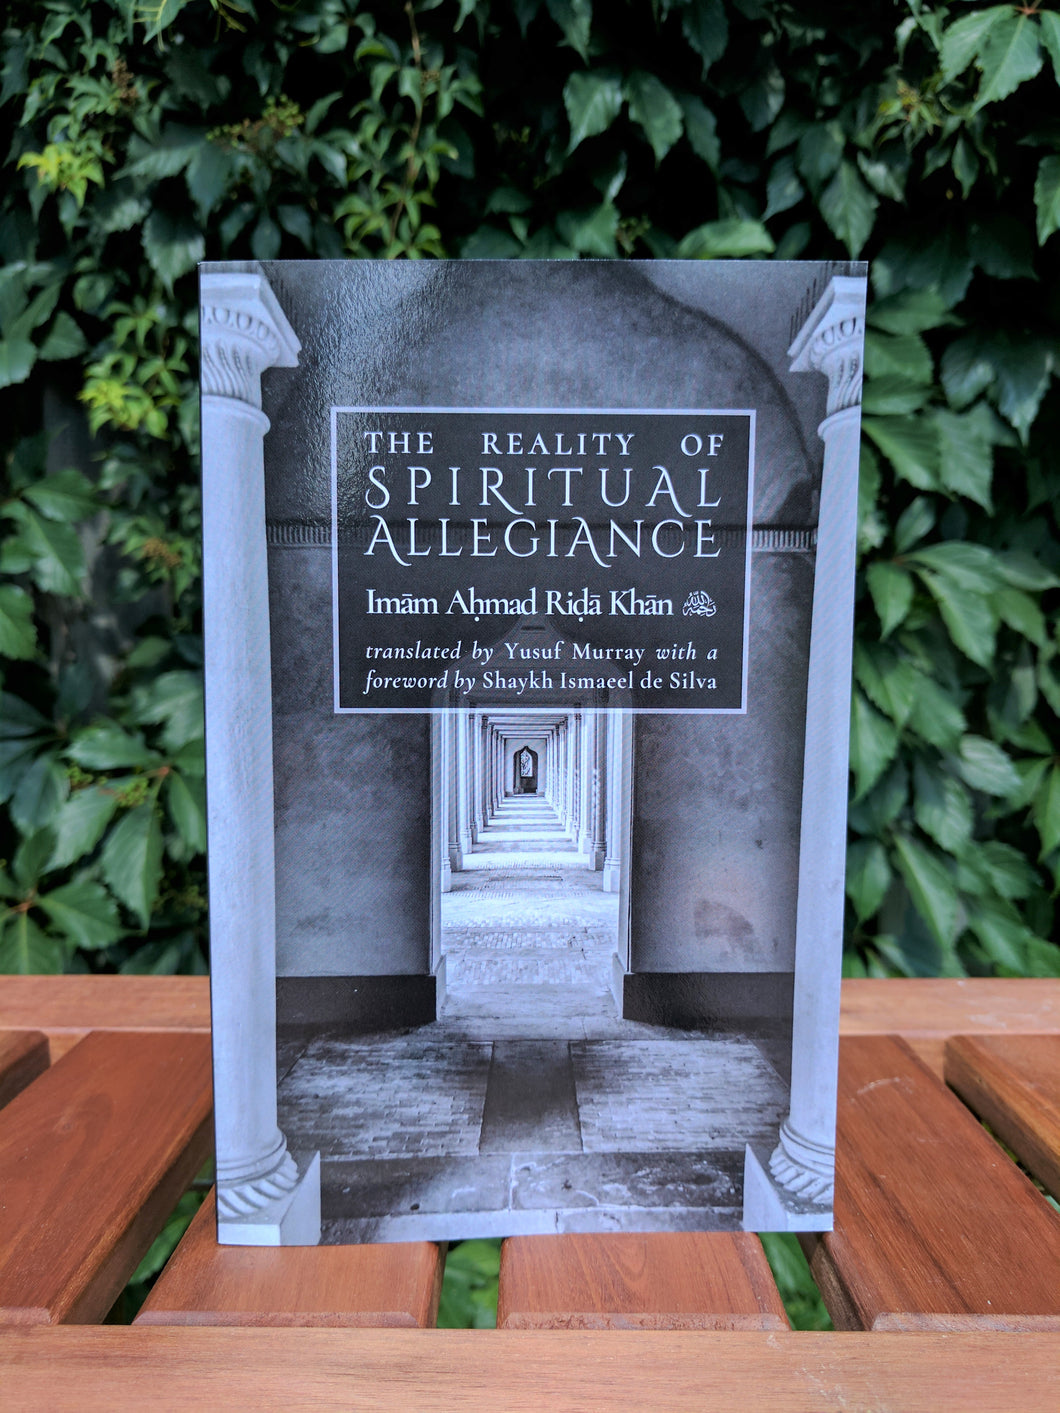 Front cover of the book The Reality of Spiritual Allegiance